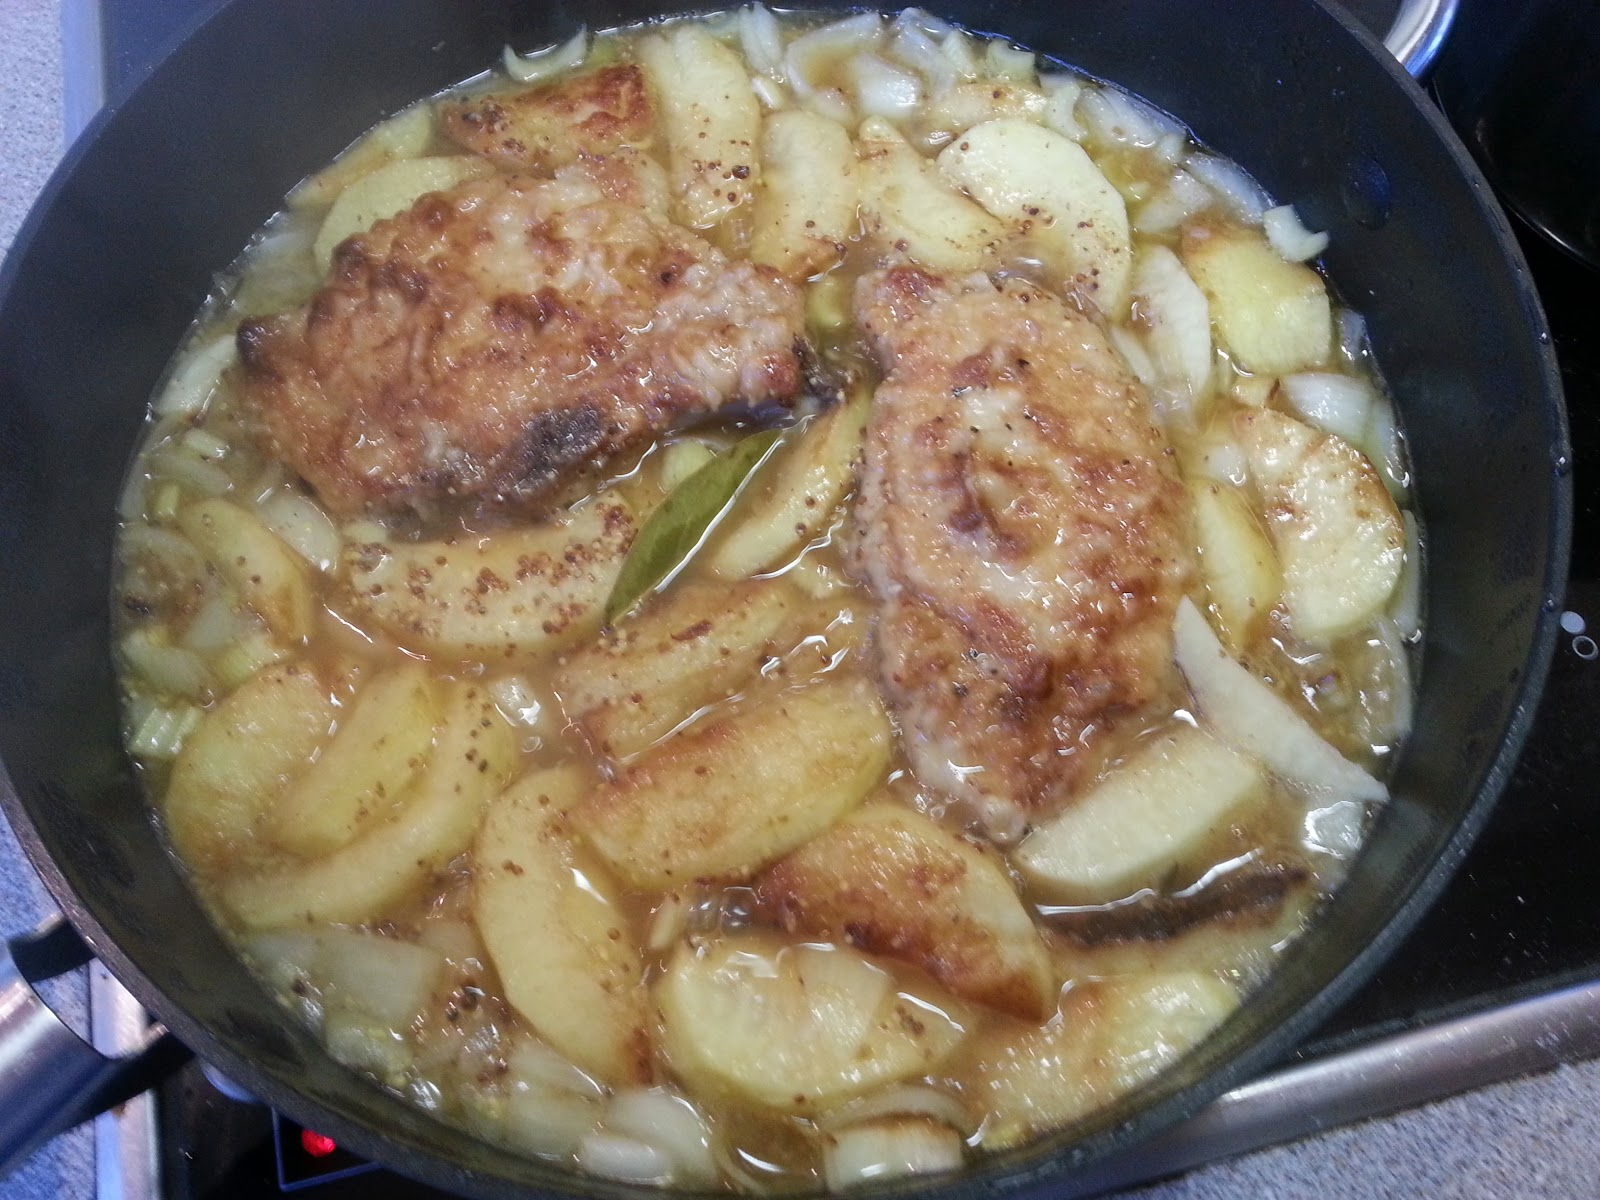 Braised pork and apples cooking in a pan